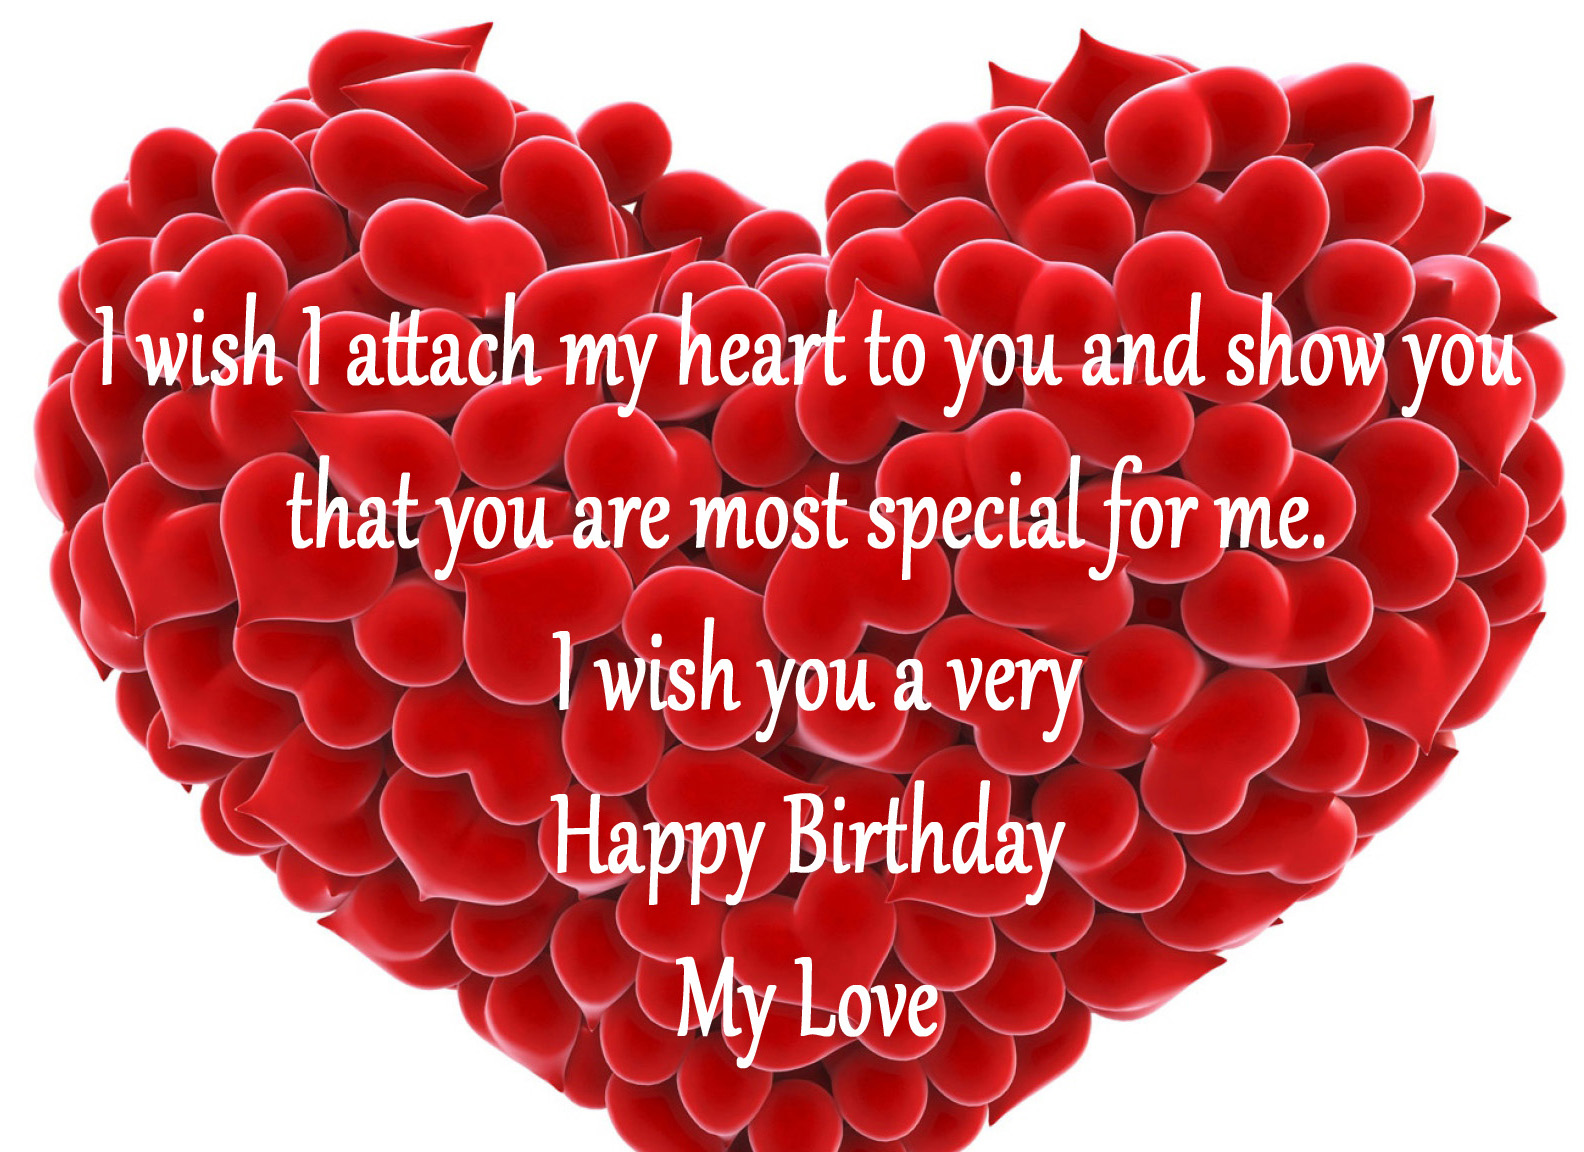 birthday wishes images for lover ; 11